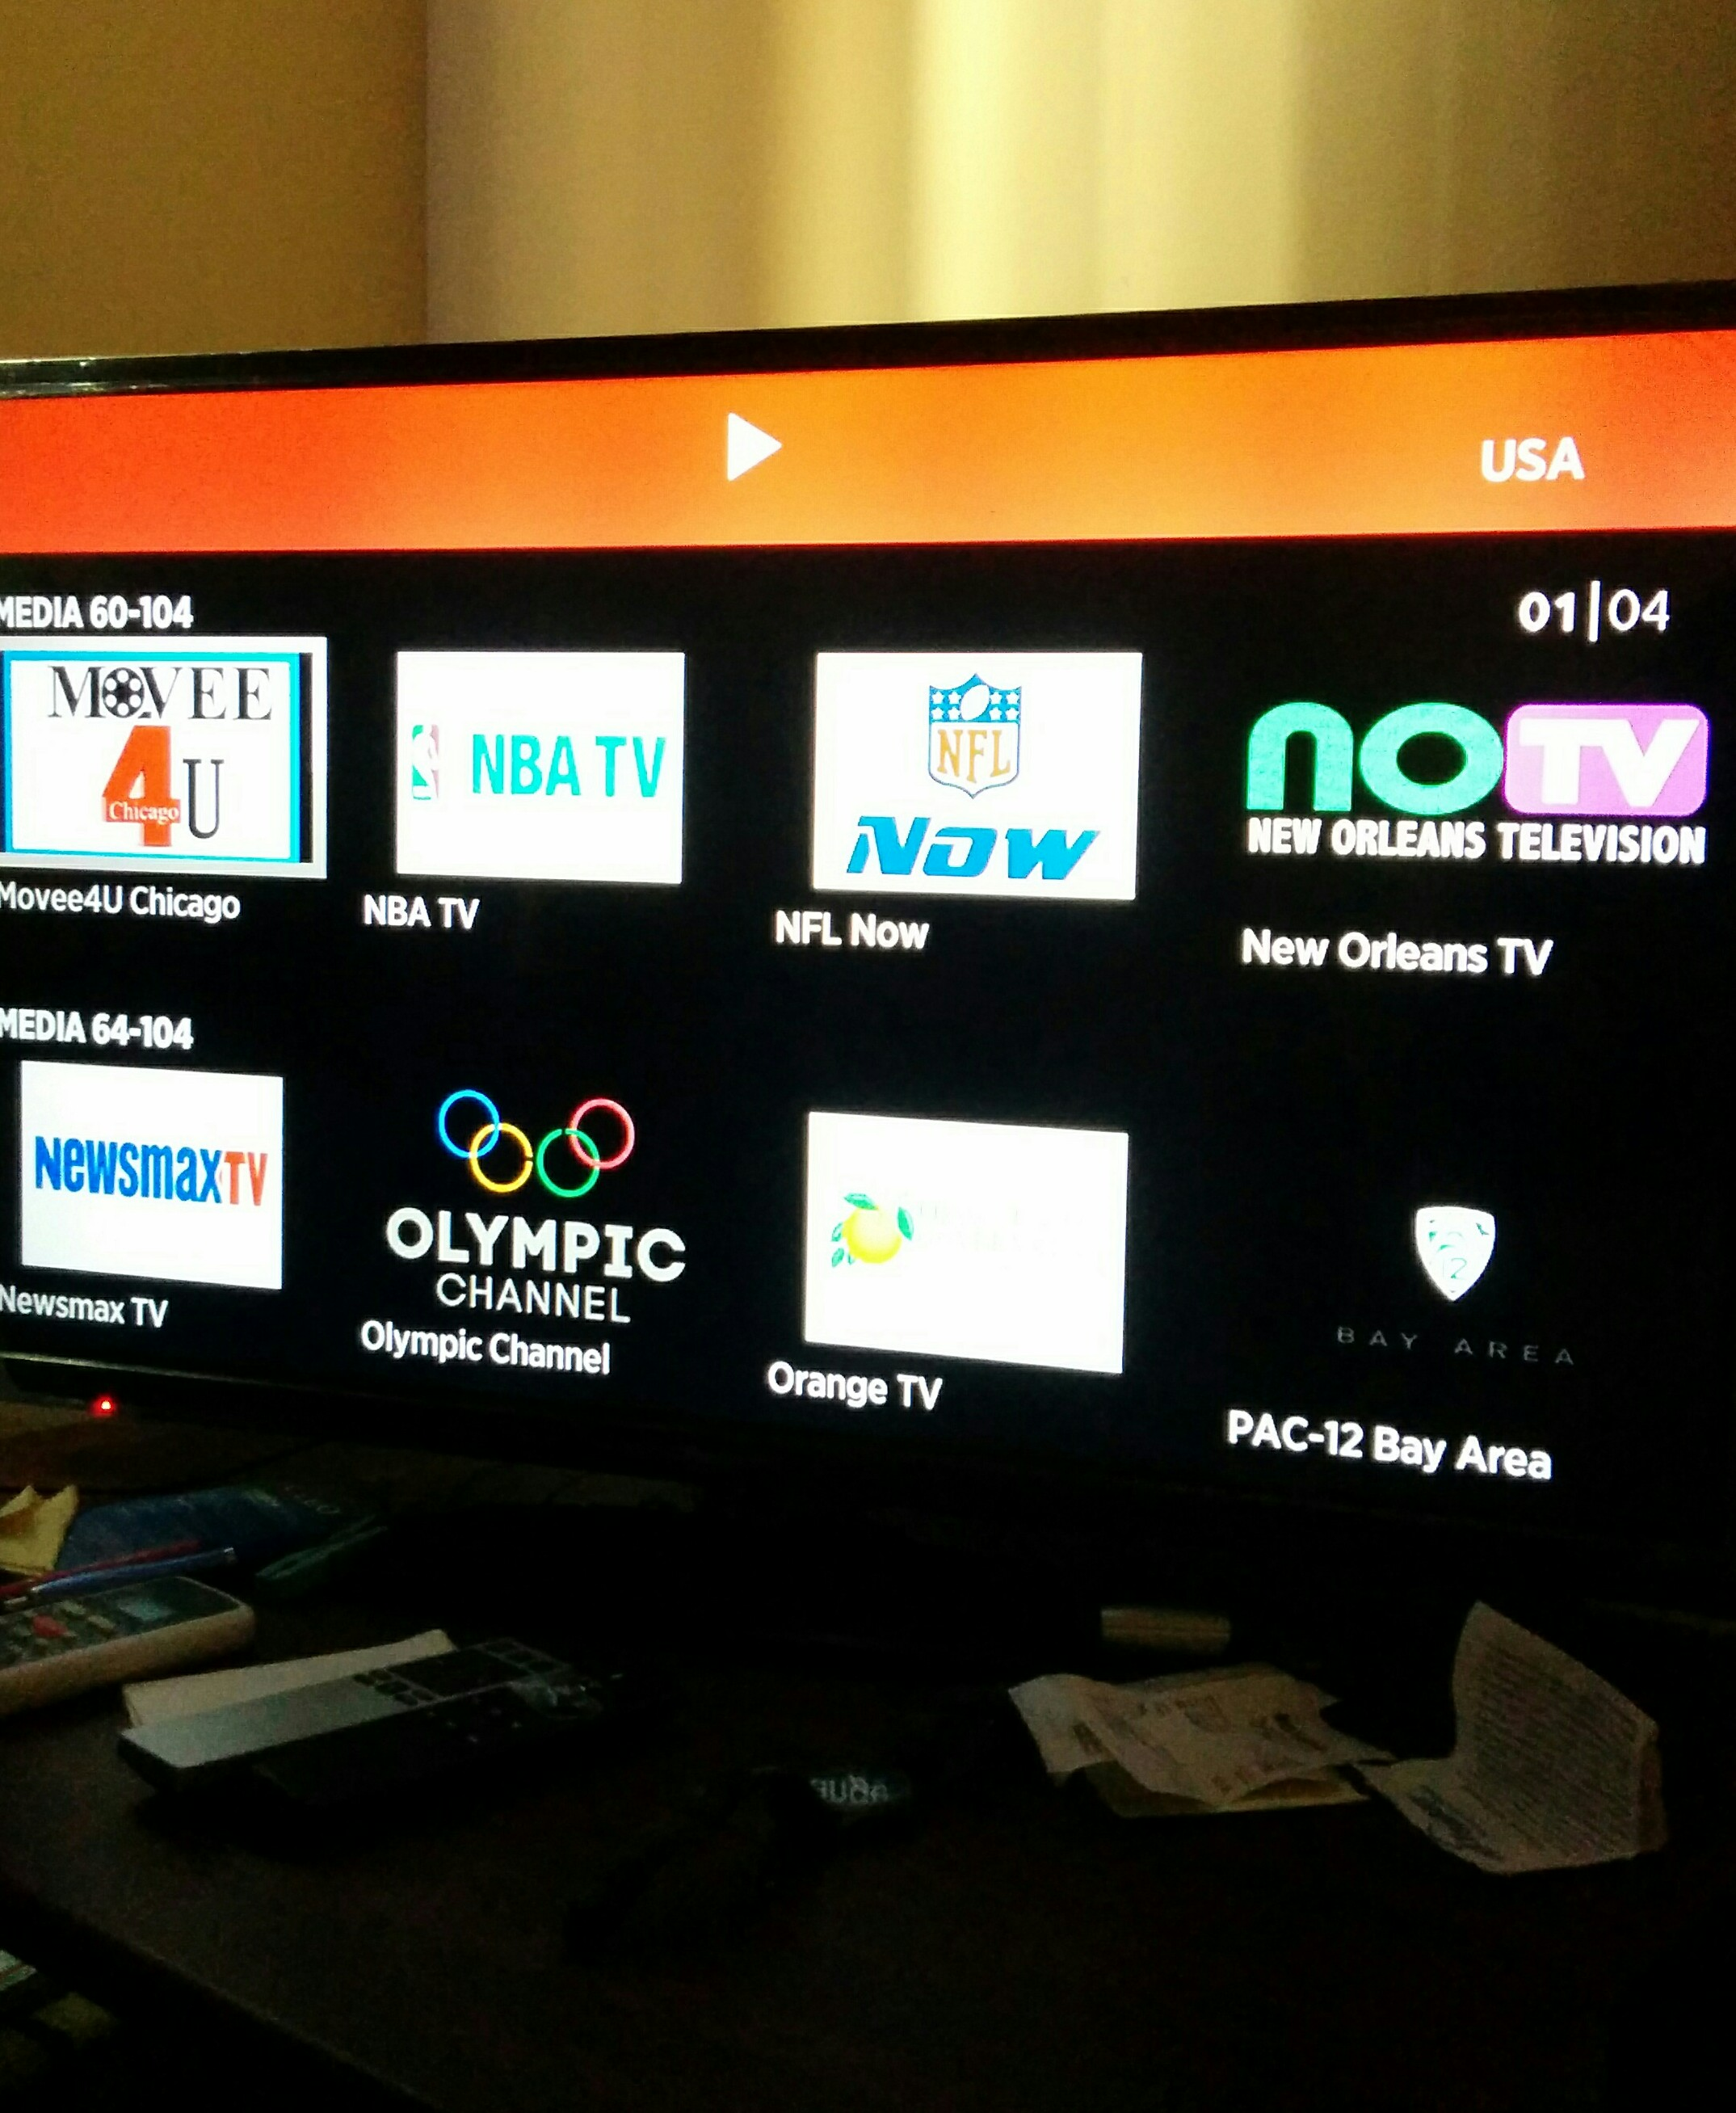 Cómo ver canales en vivo en tu Roku, Amazon Fire o Smart TV